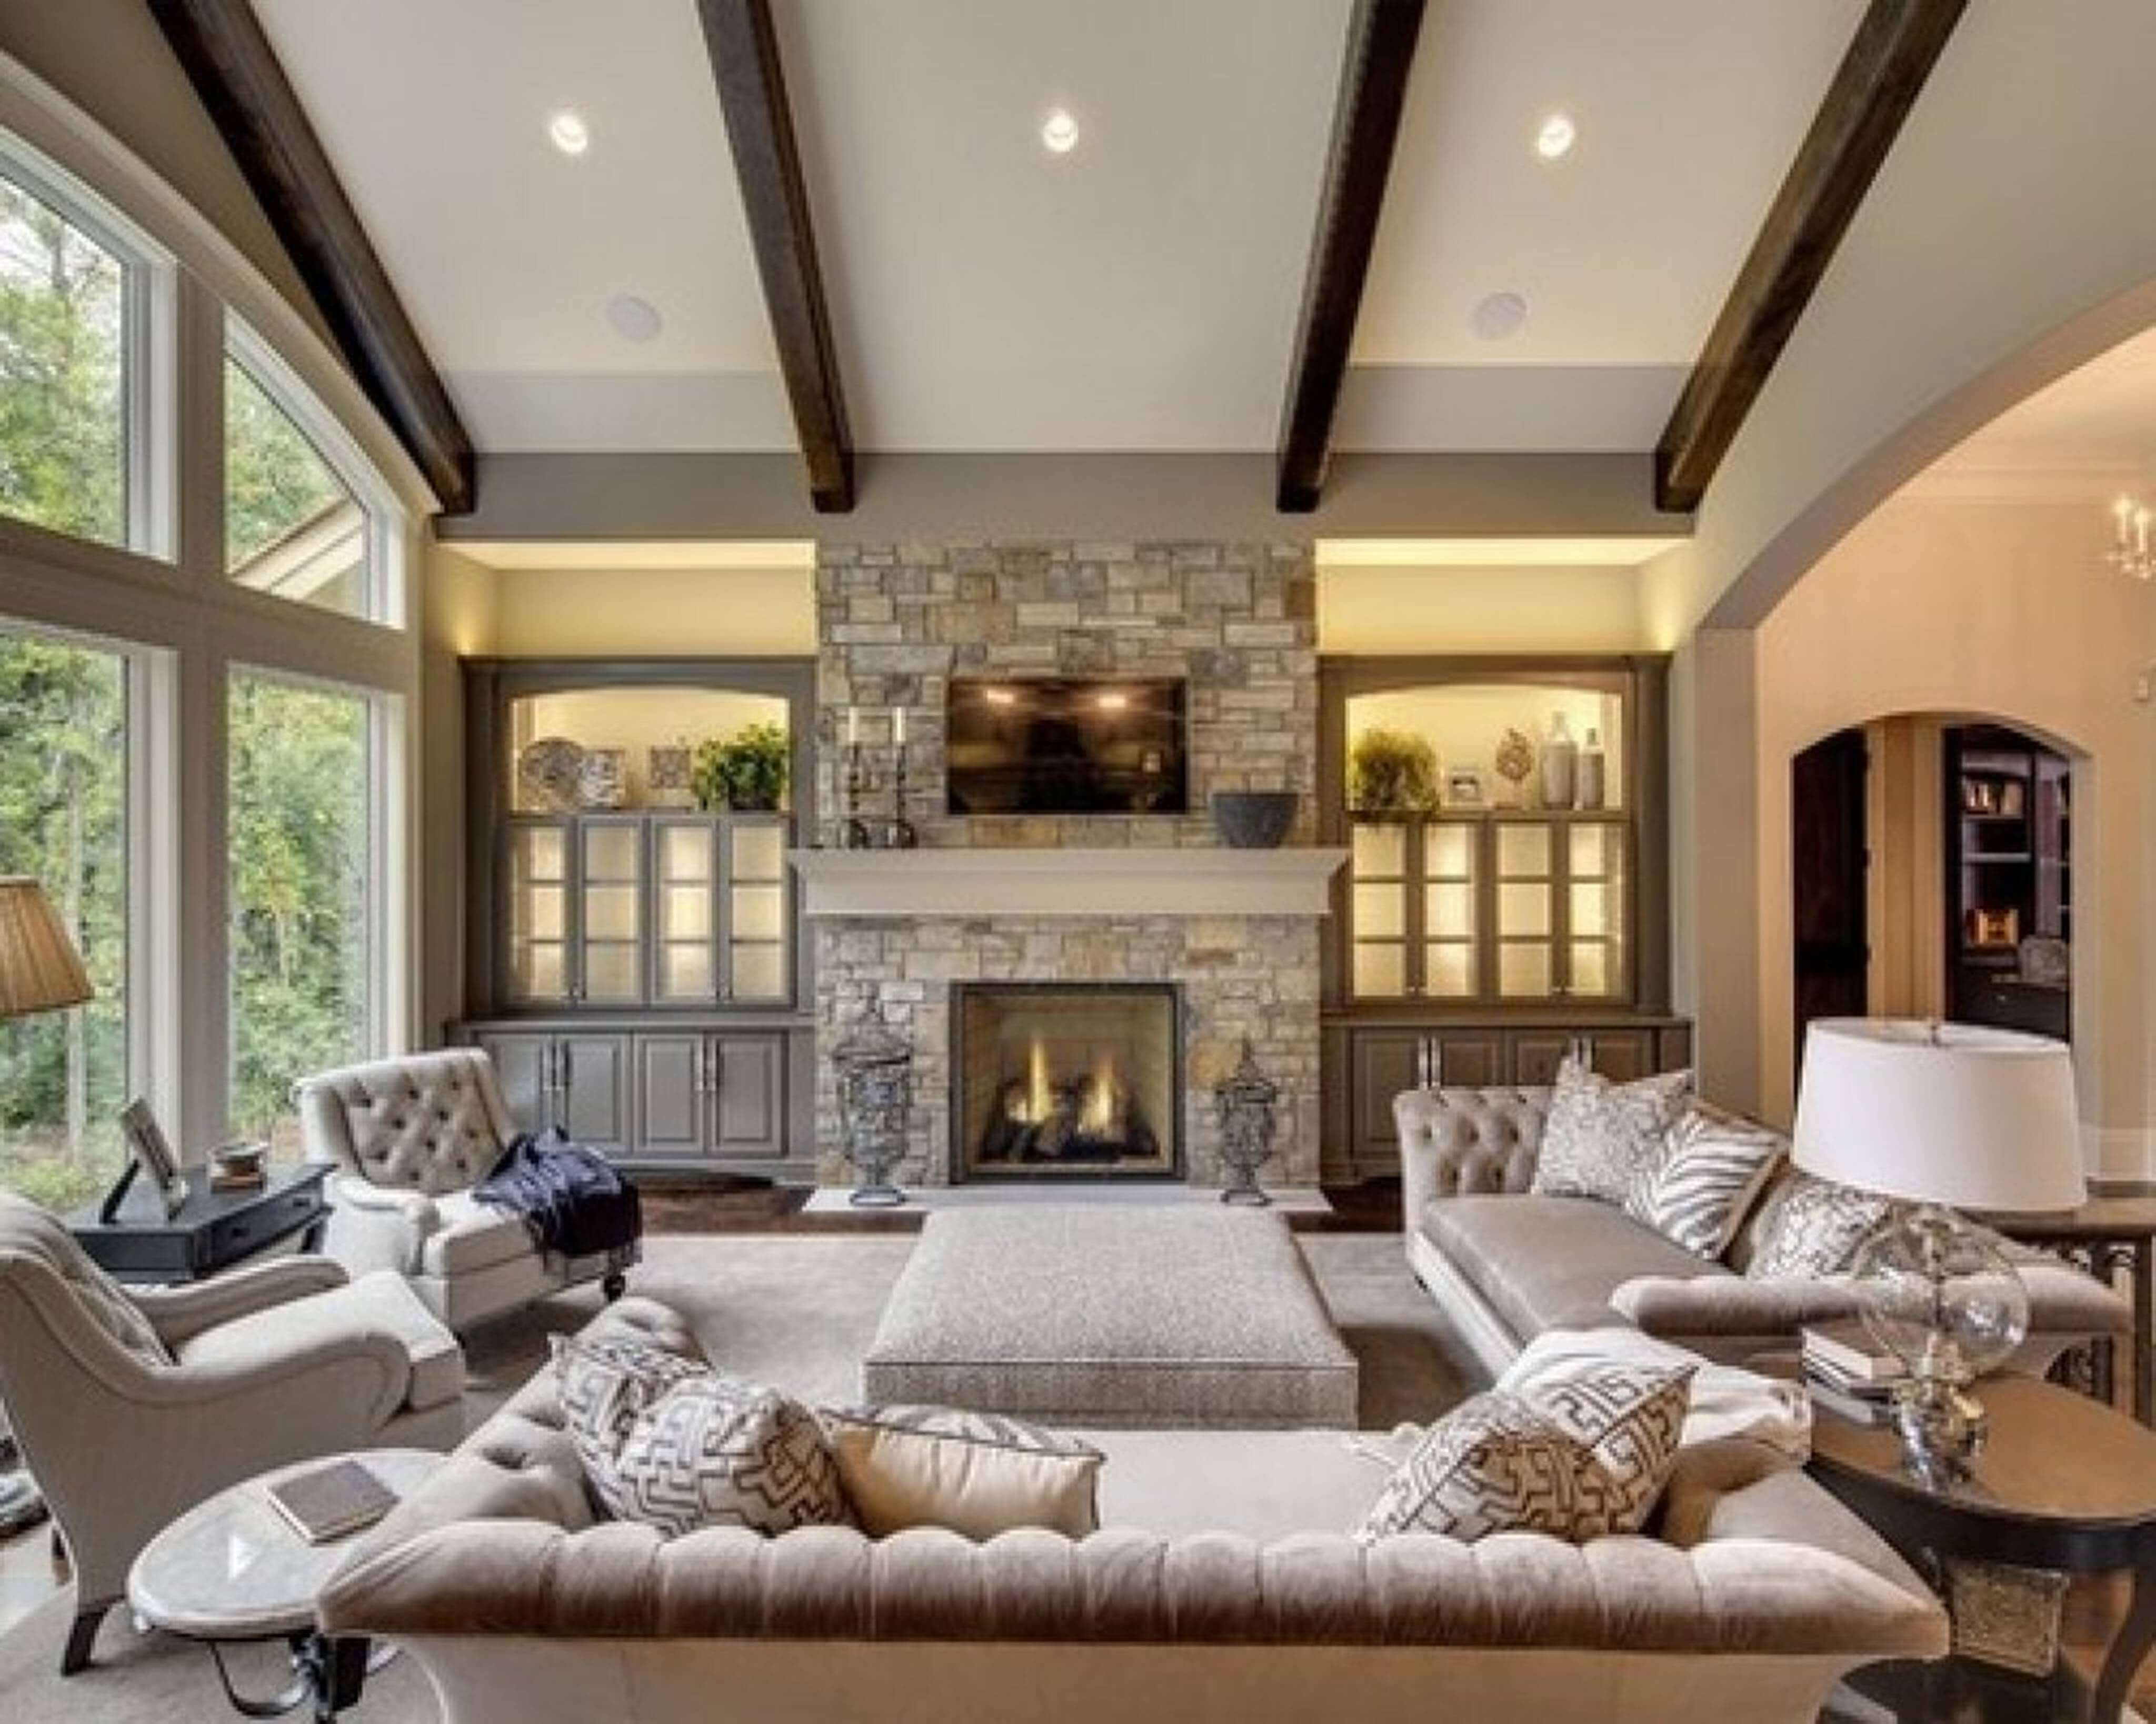 50 fantastic corner fireplace ideas make your room feel relaxed rh getbeautified com living room fireplace ideas pinterest living room fireplace decor ideas